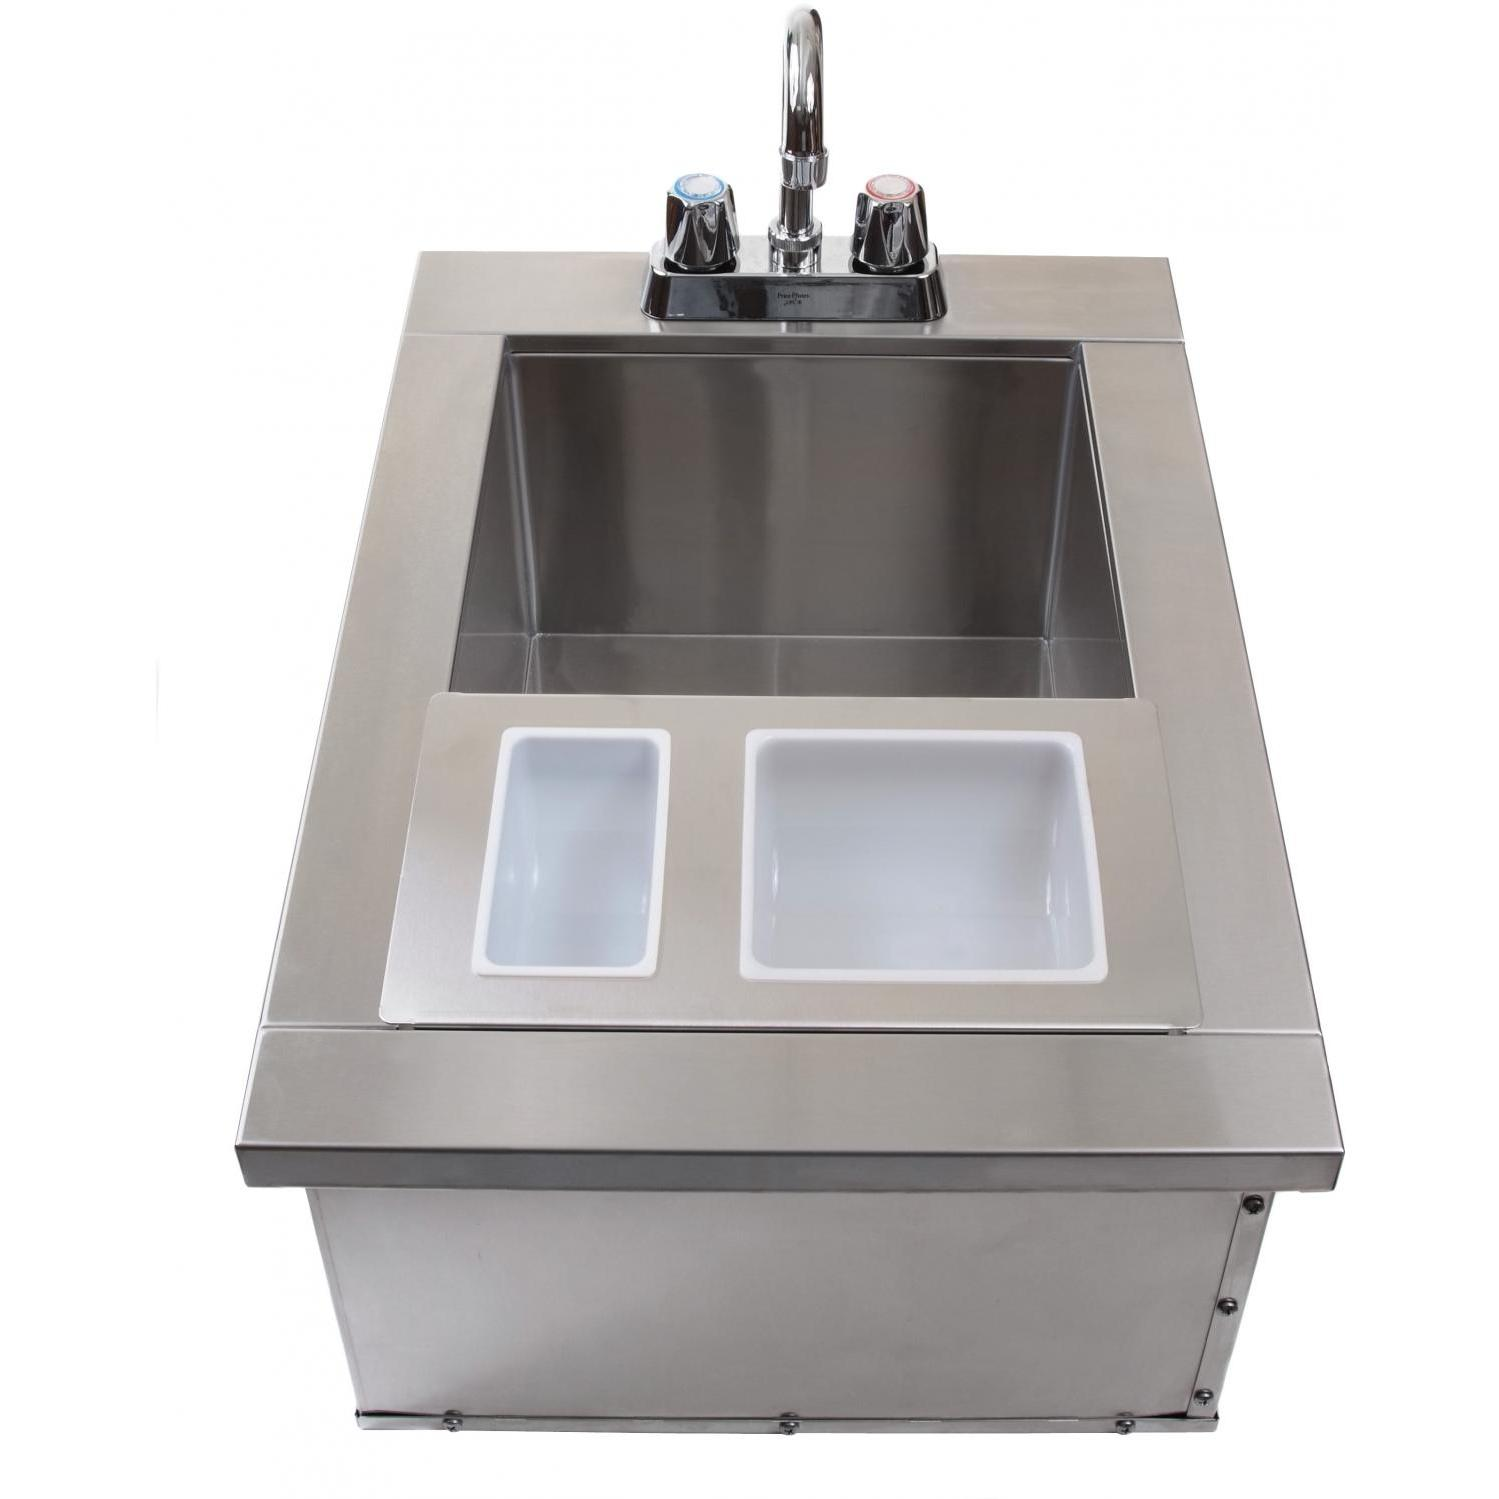 BBQ Guys Drop In Bar Sink With Faucet & Condiment Holders